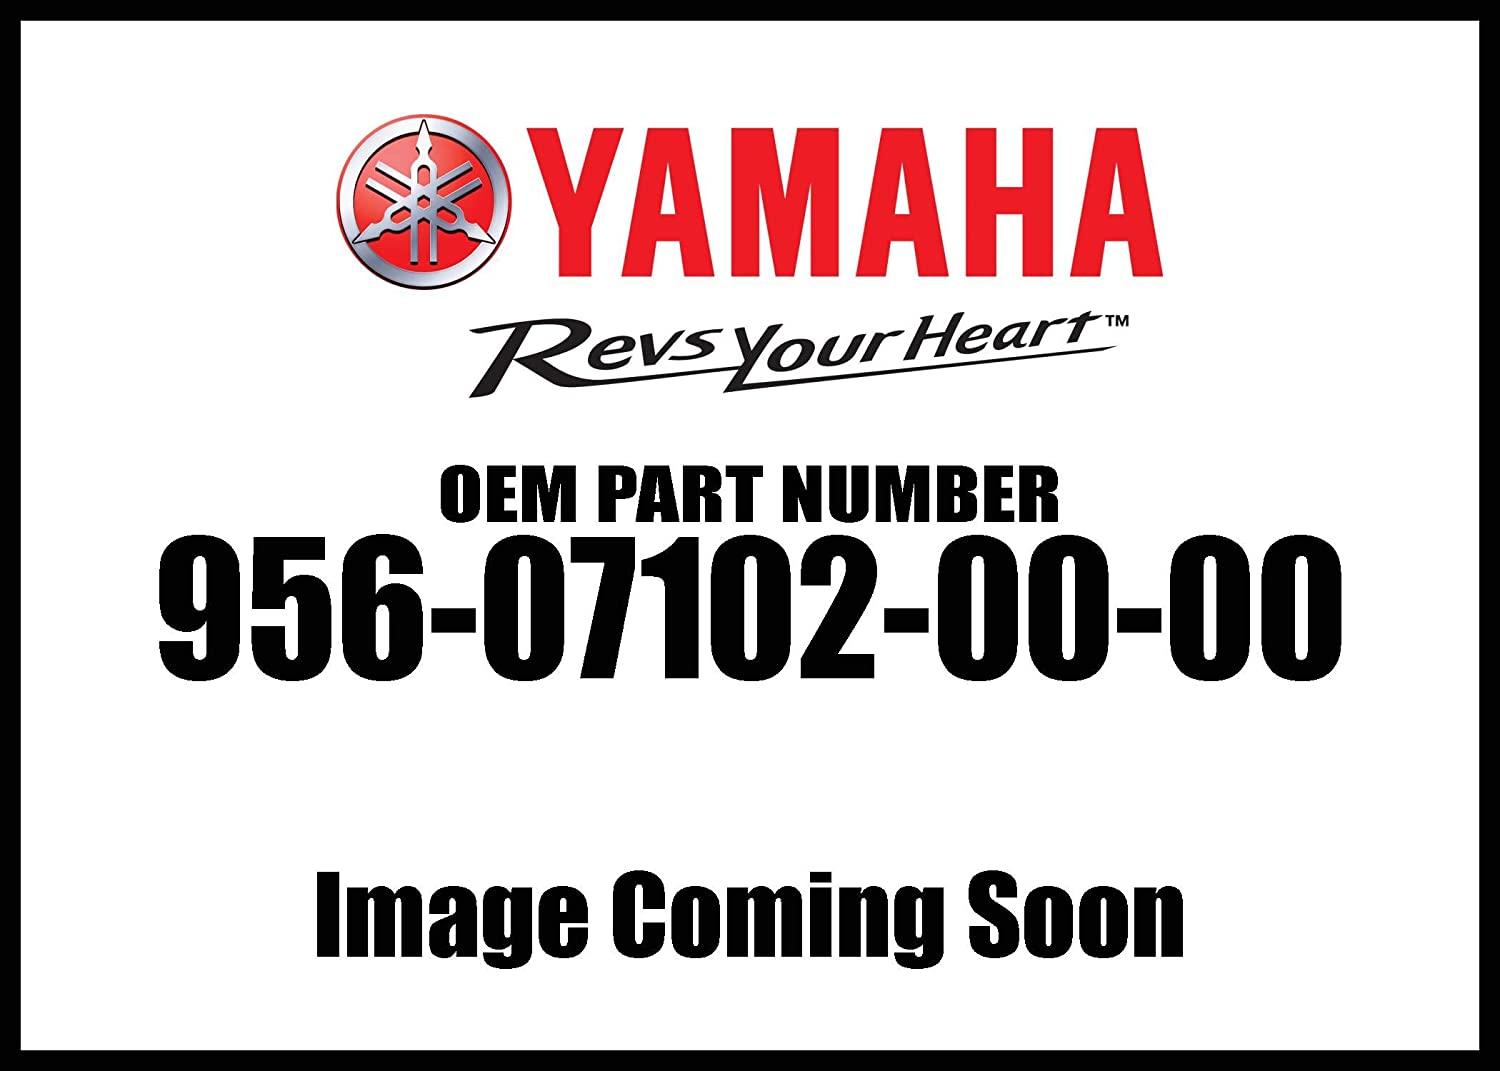 Yamaha 95607-10200-00 NUT, SELF-LOCKING; 956071020000